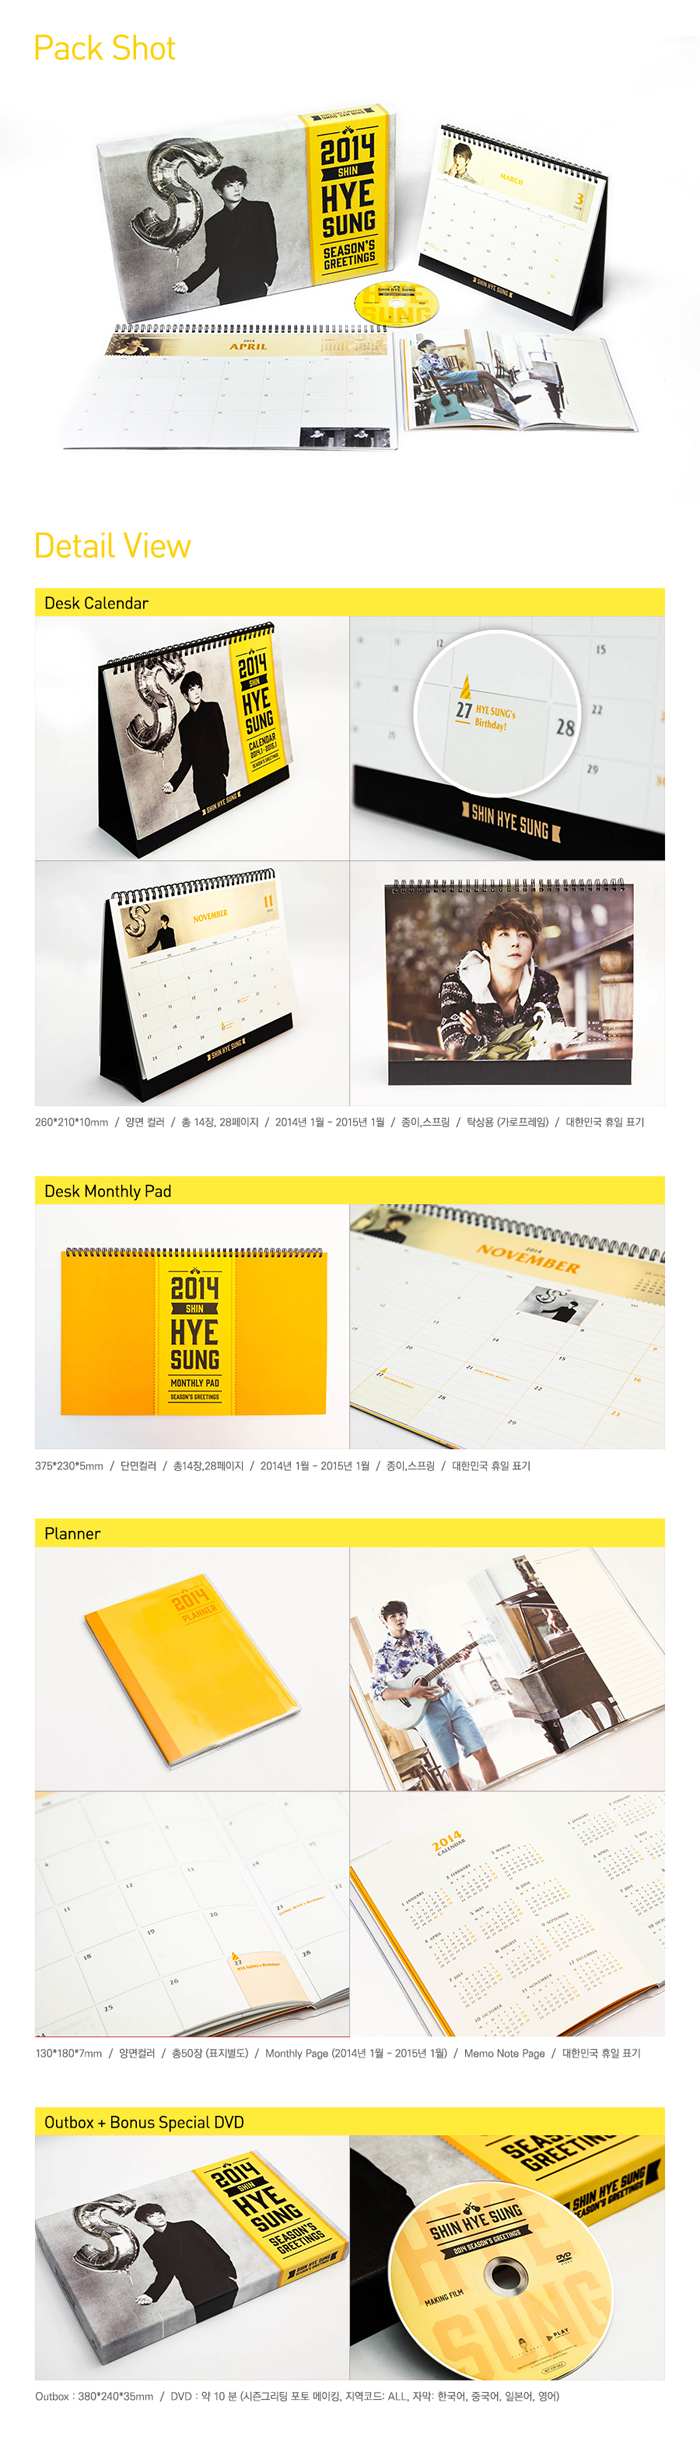 [ K-POP ] (Official Goods) Shinhwa : 2014 Season Greeting (Hye Sung) (Desk Calendar+Monthly Pad +Planner +DVD)